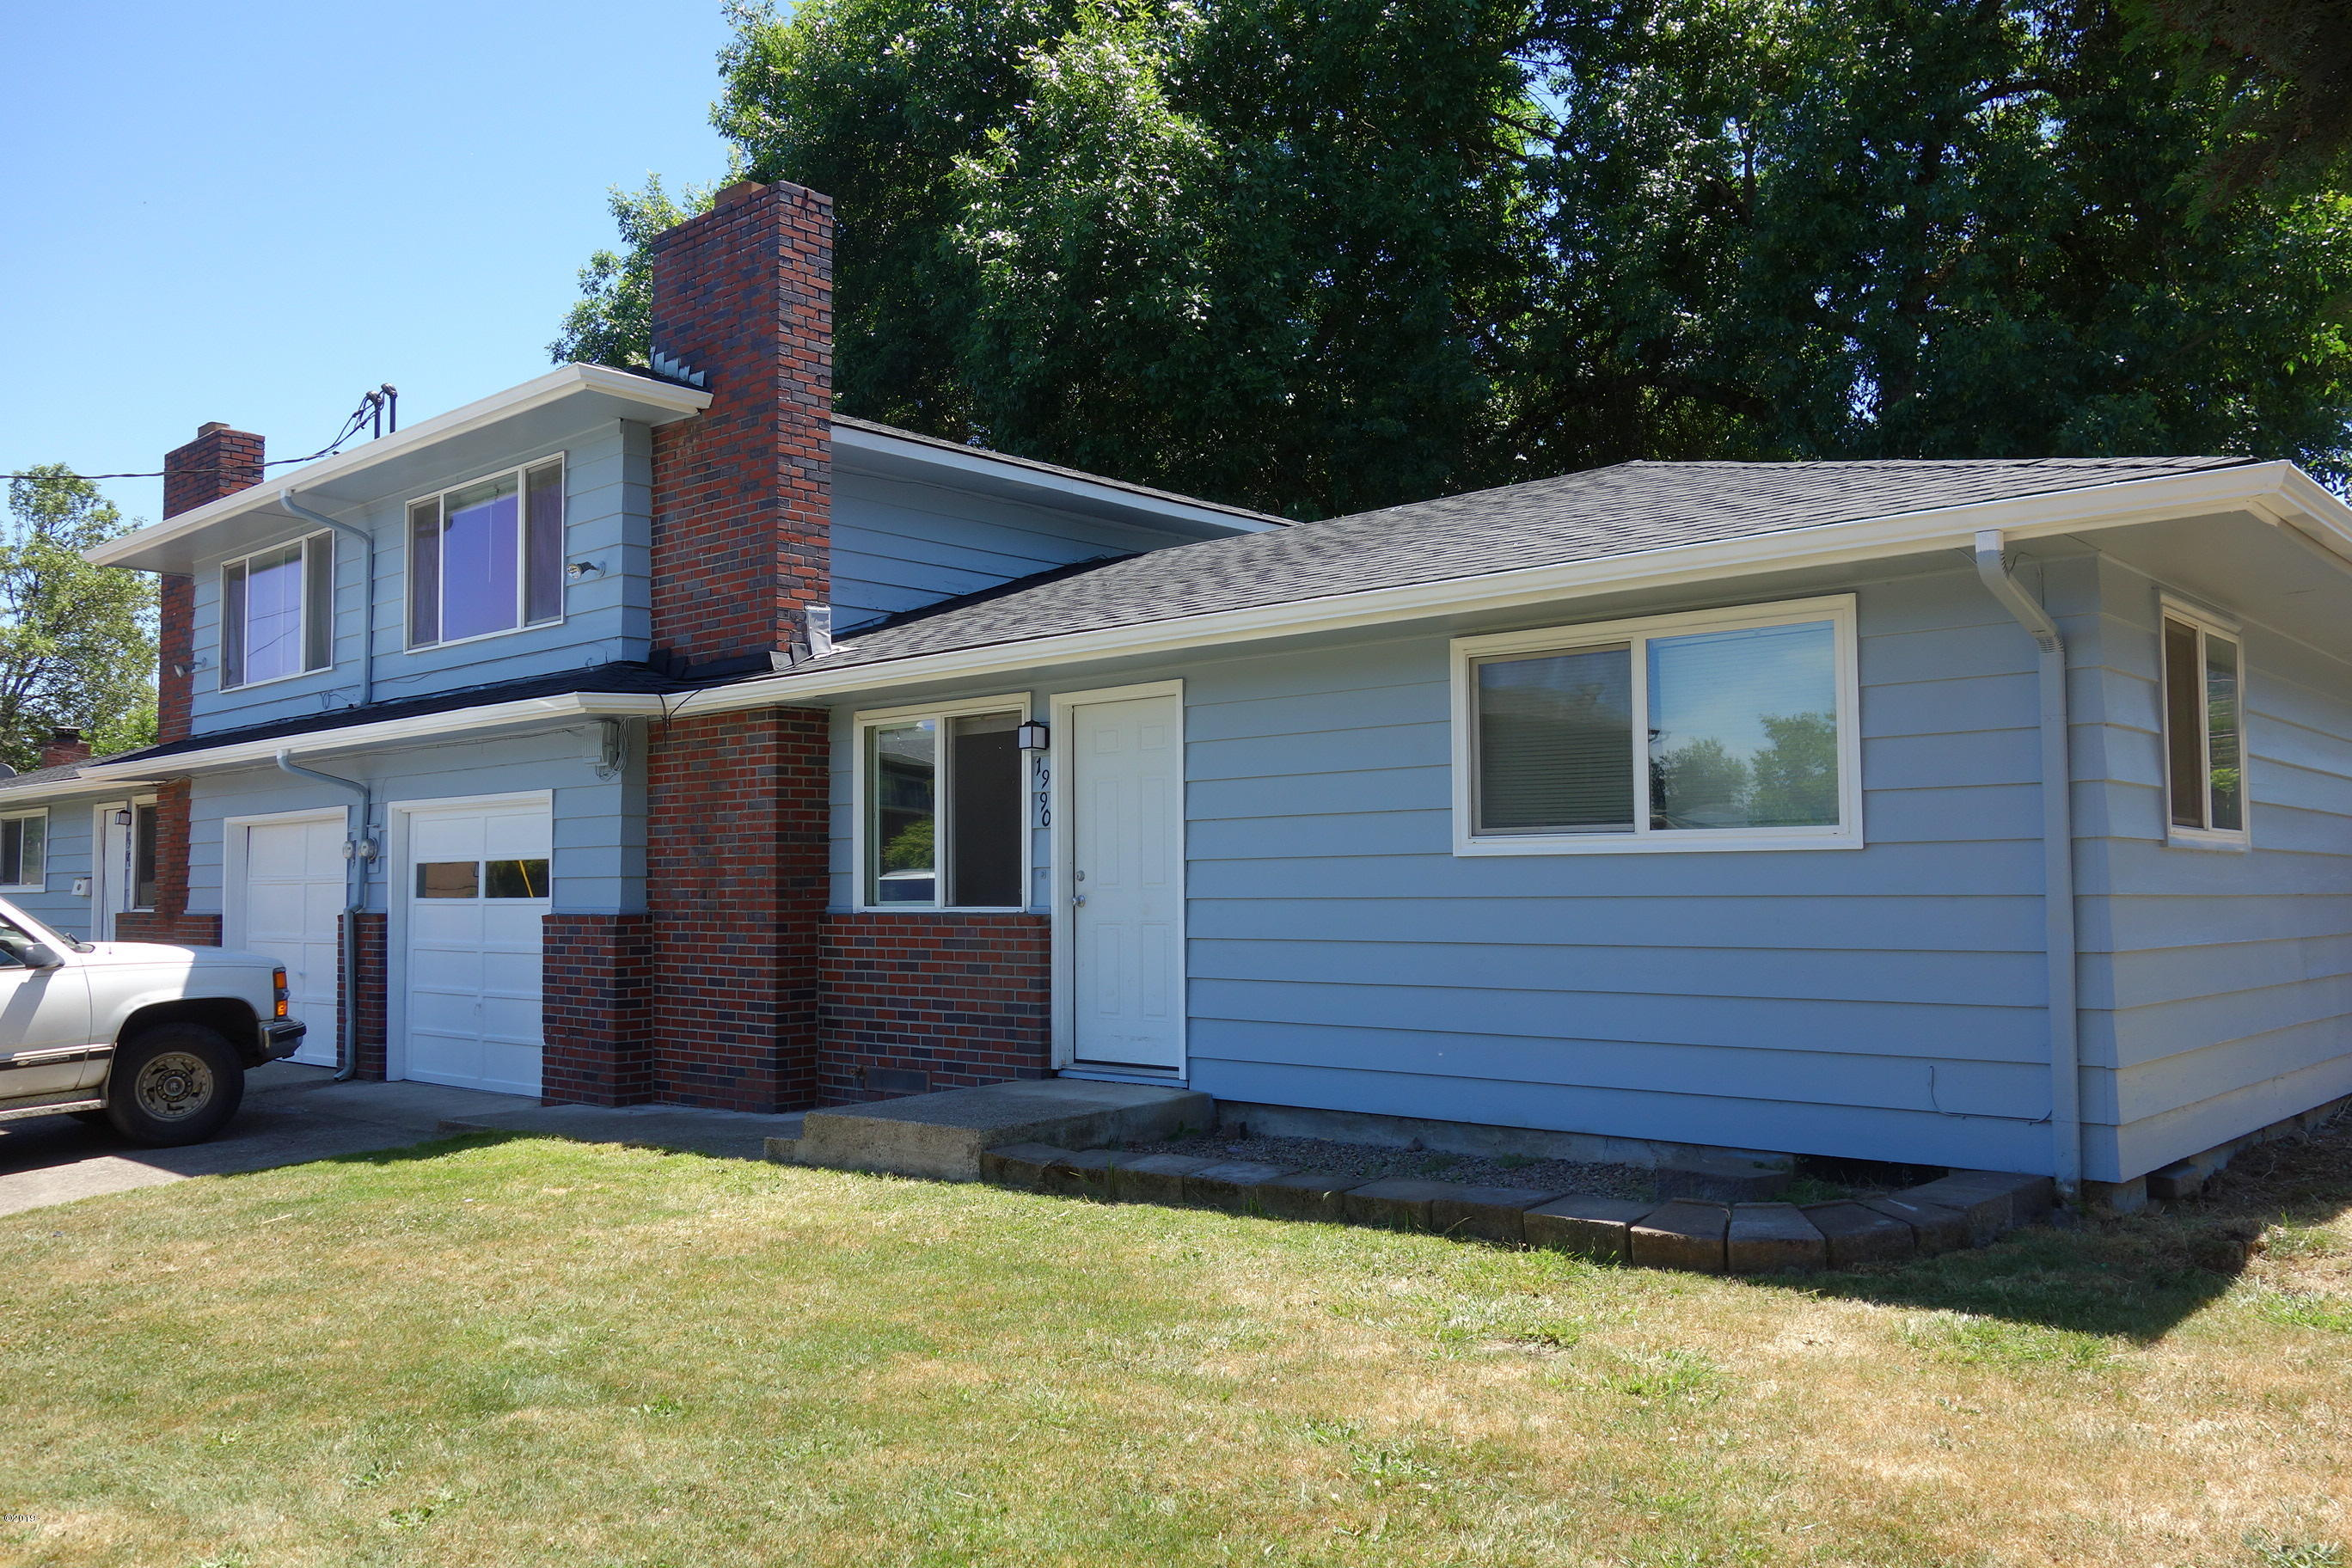 1980 W 17th Ave, Eugene, OR 97402 - Front of Duplex